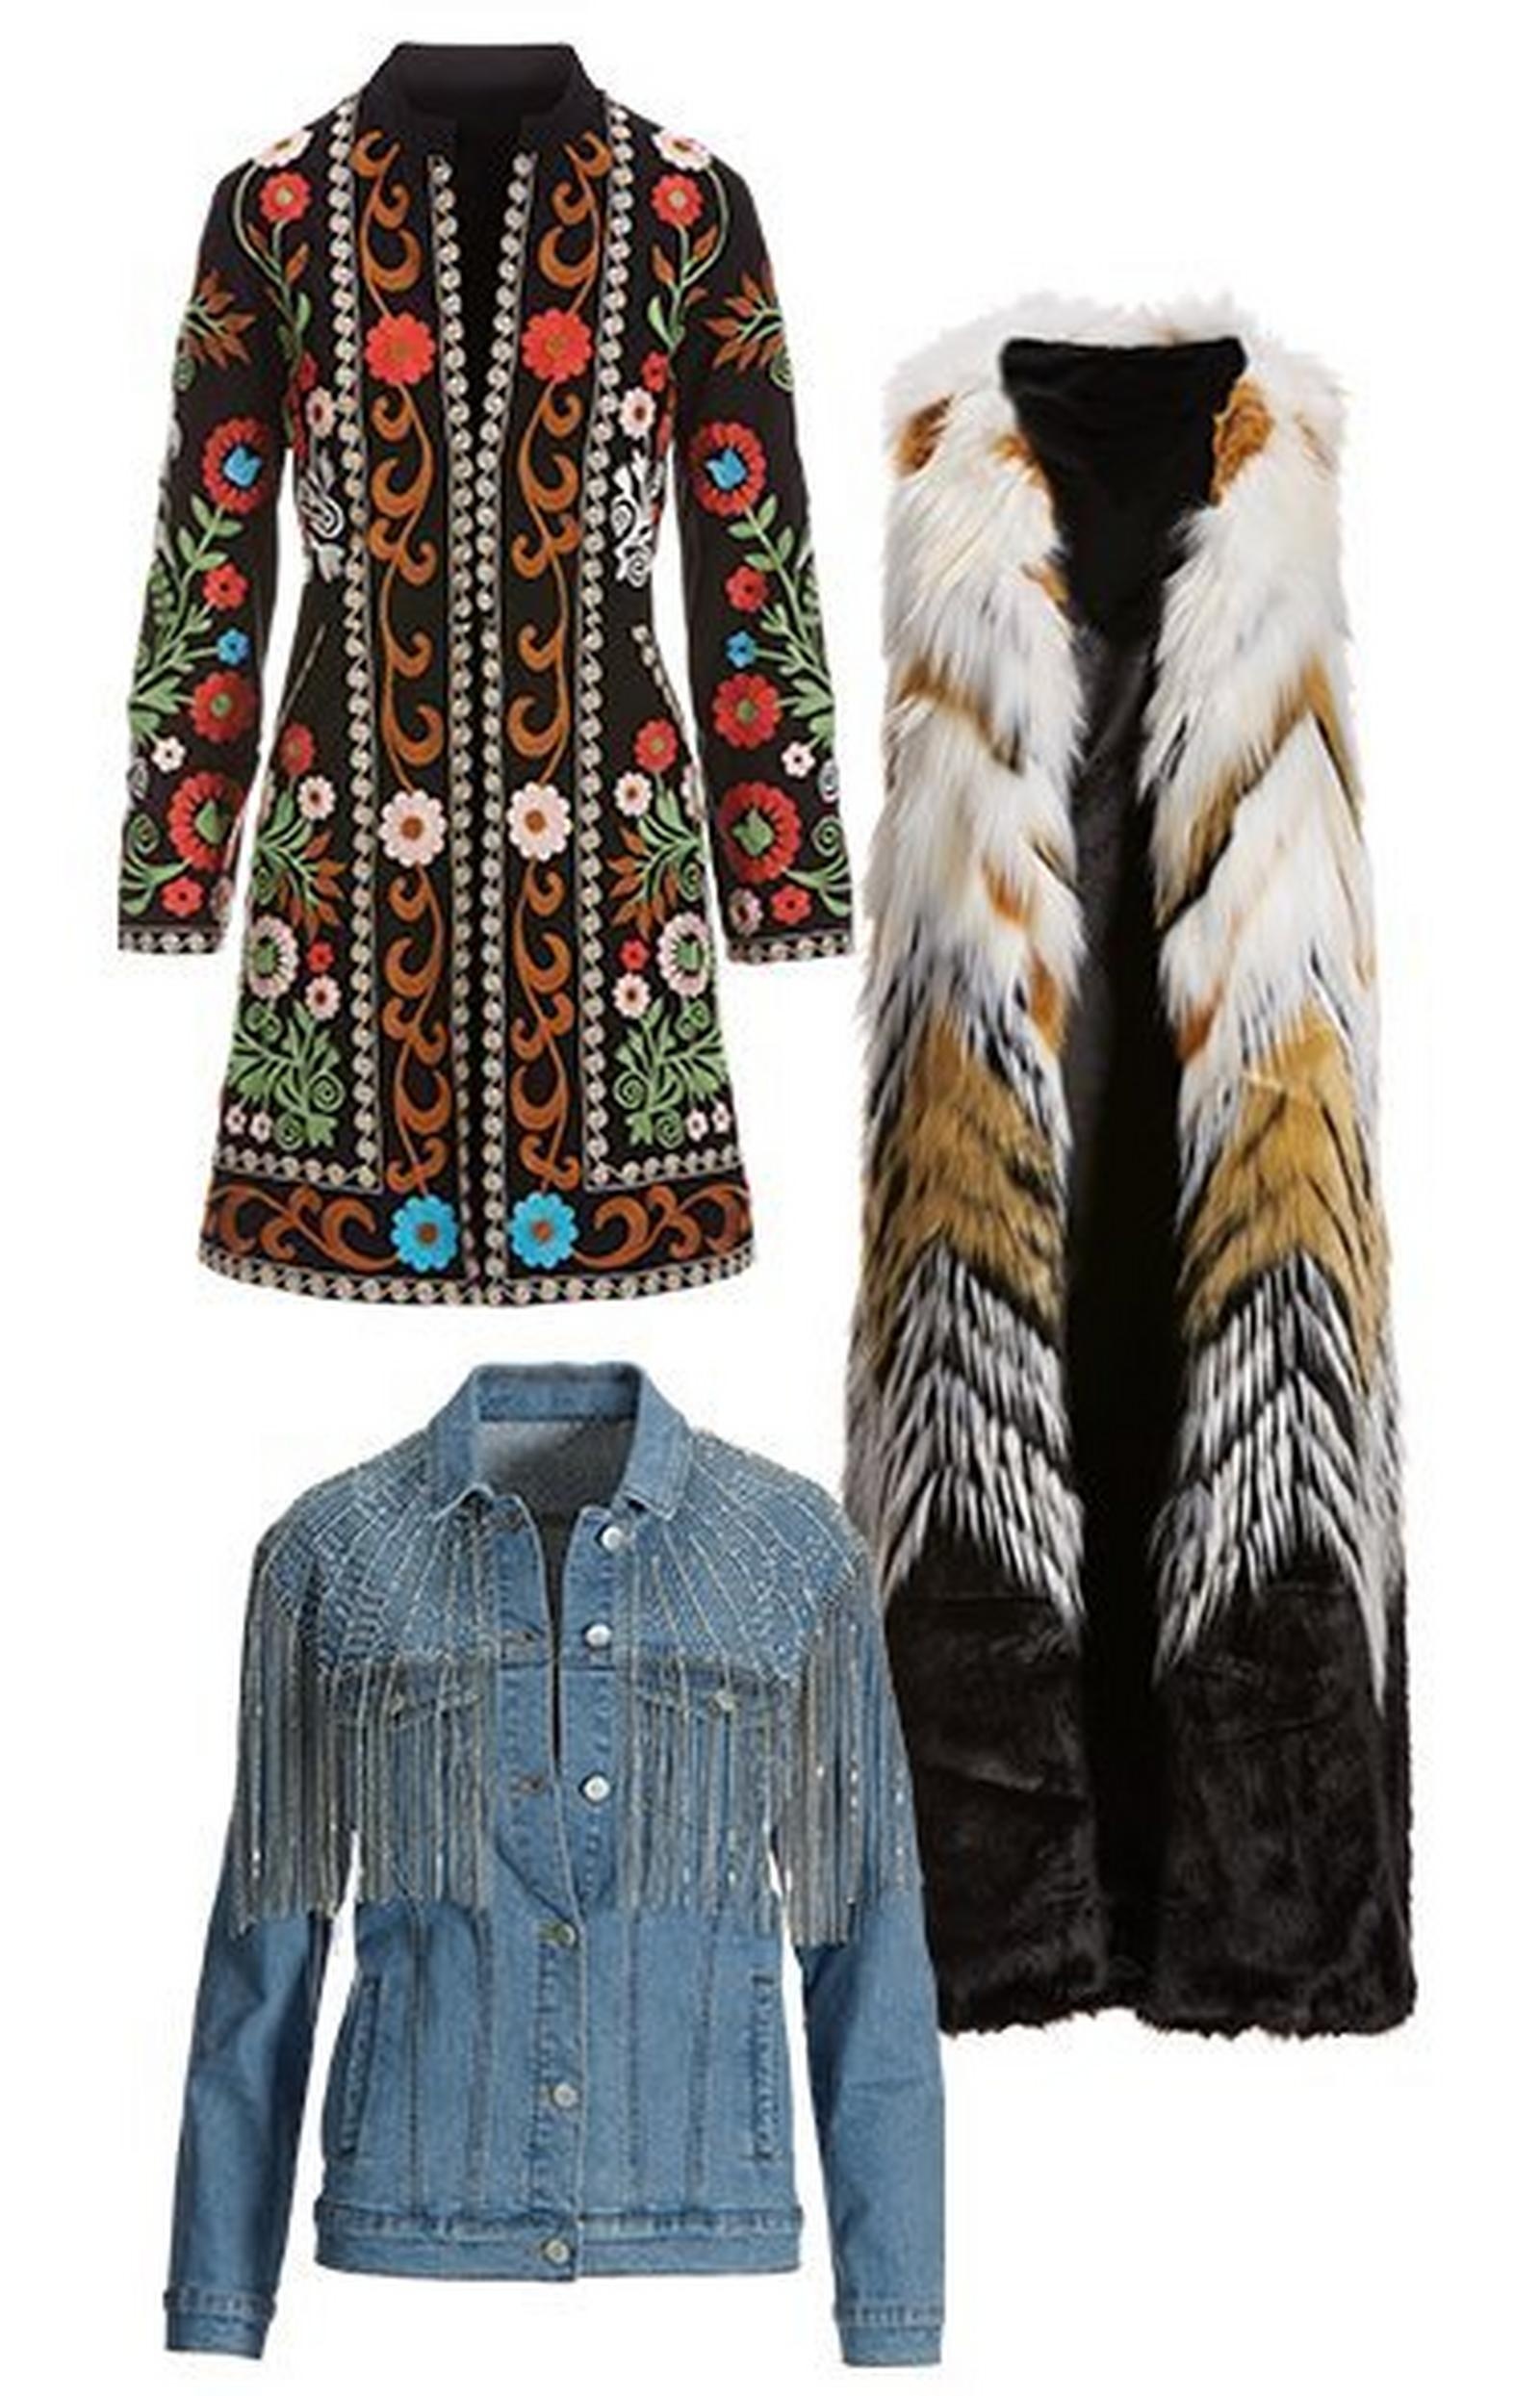 pullout images: floral embroidered topper jacket, multicolored faux-fur long vest, and denim jacket with rhinestone fringe detail.